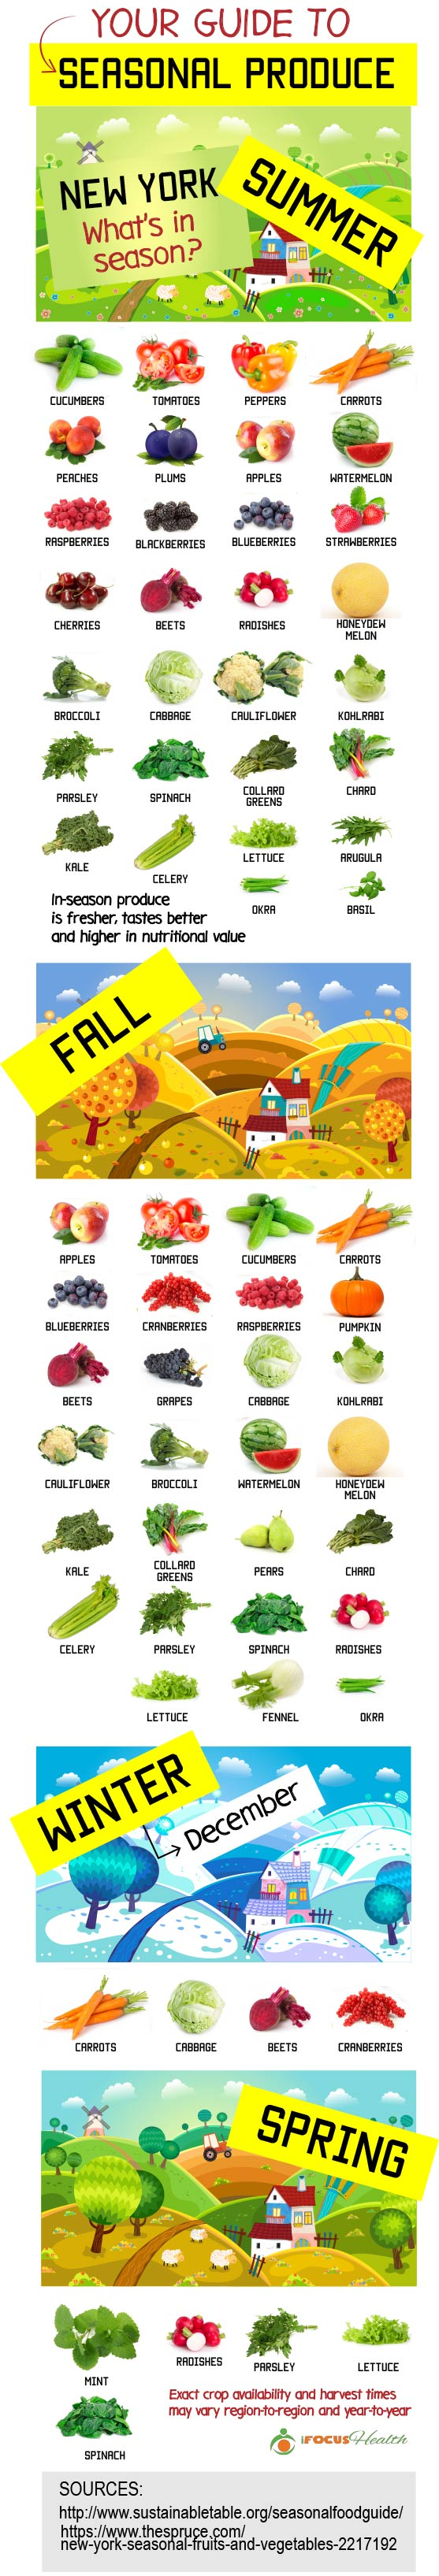 seasonal produce guide infographic